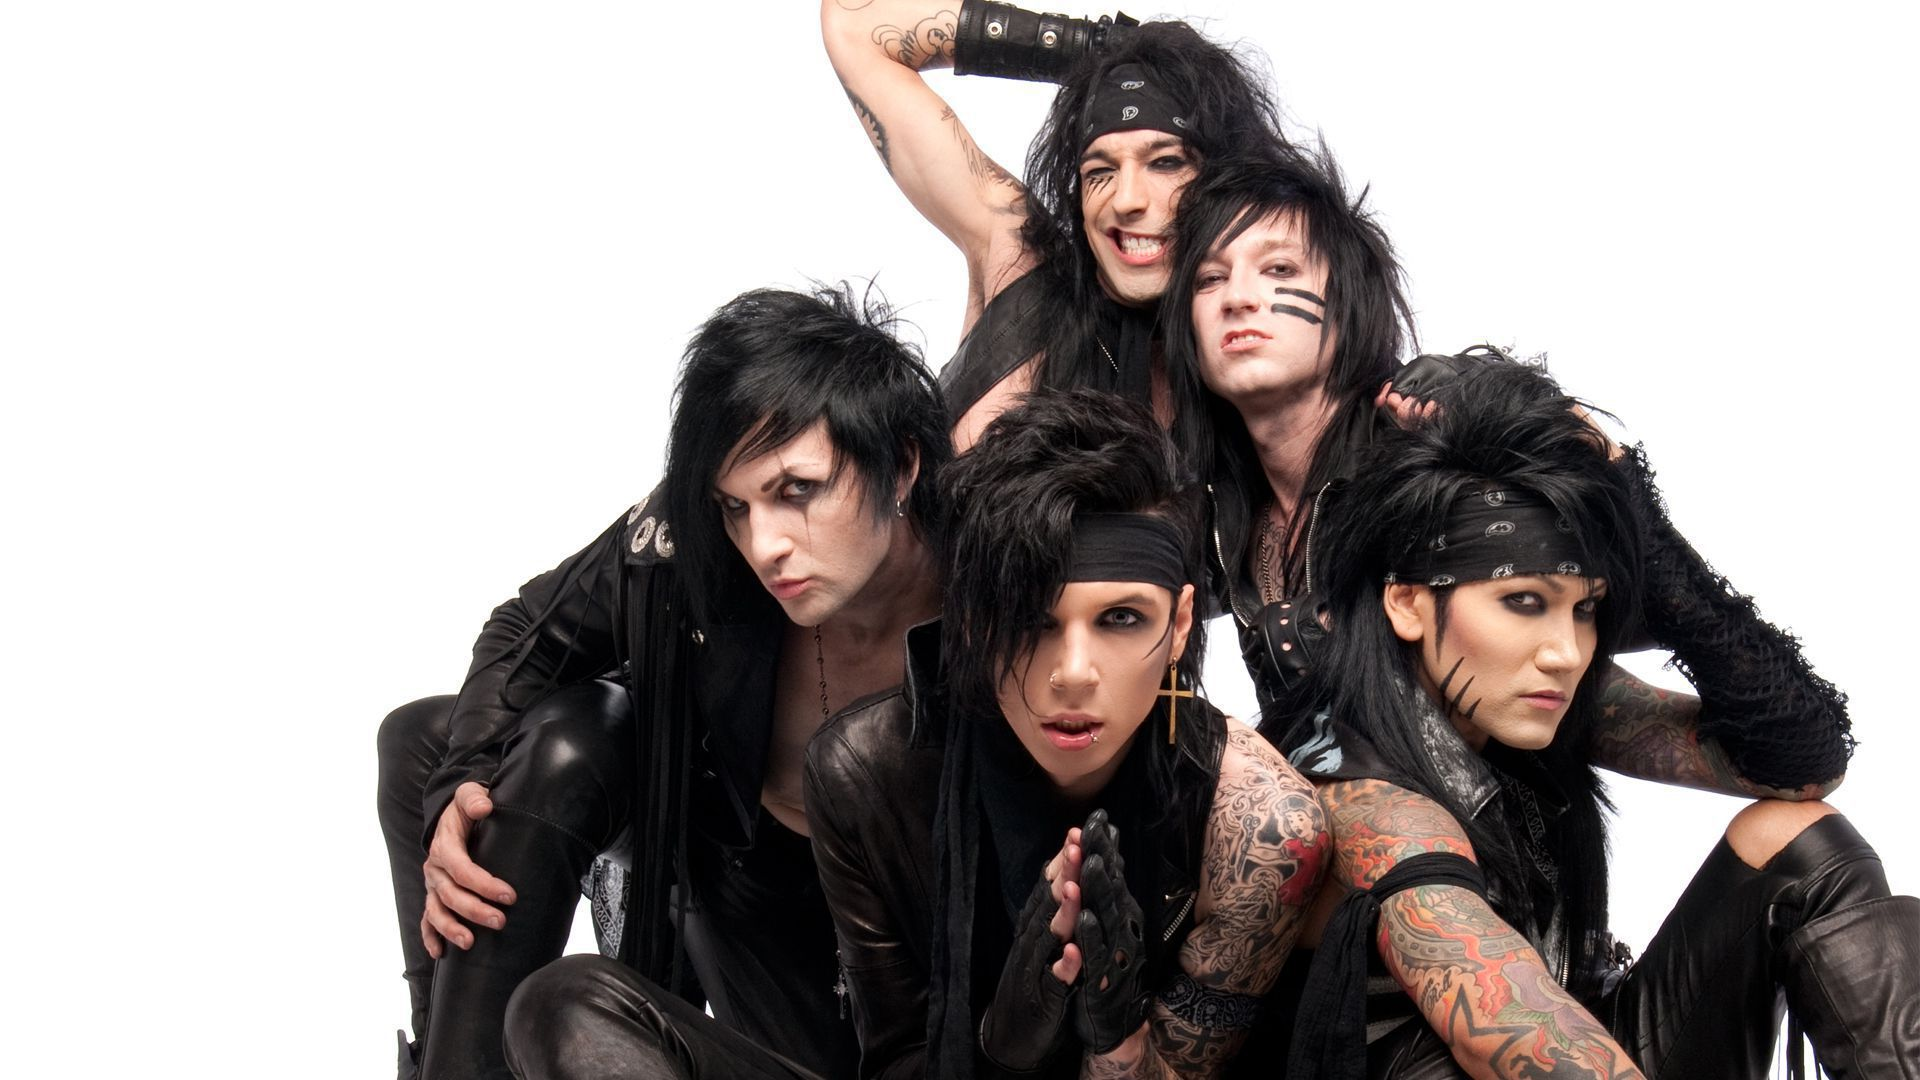 Falling In Reverse Computer Wallpaper Black Veil Brides Wallpapers Backgrounds